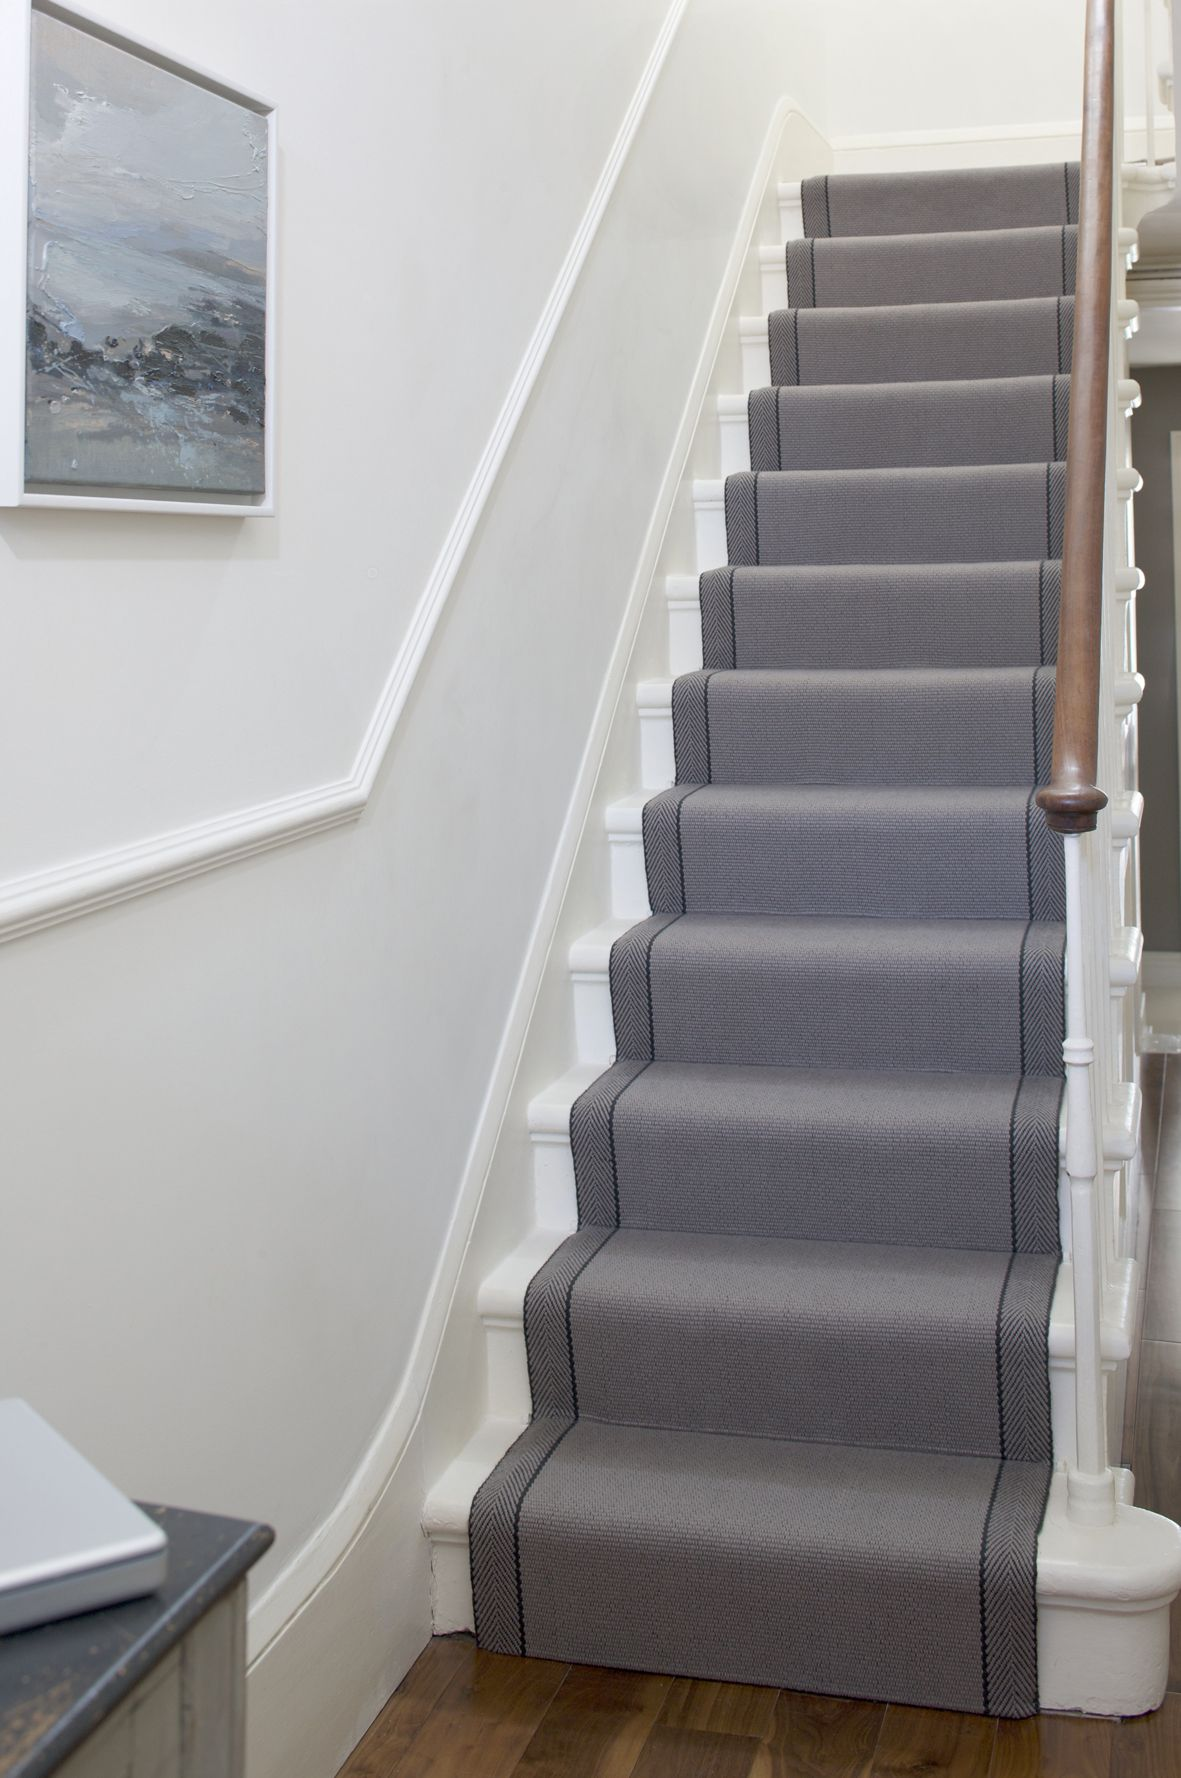 Best Simple Clean And On Trend This Roger Oates Stair Runner 400 x 300